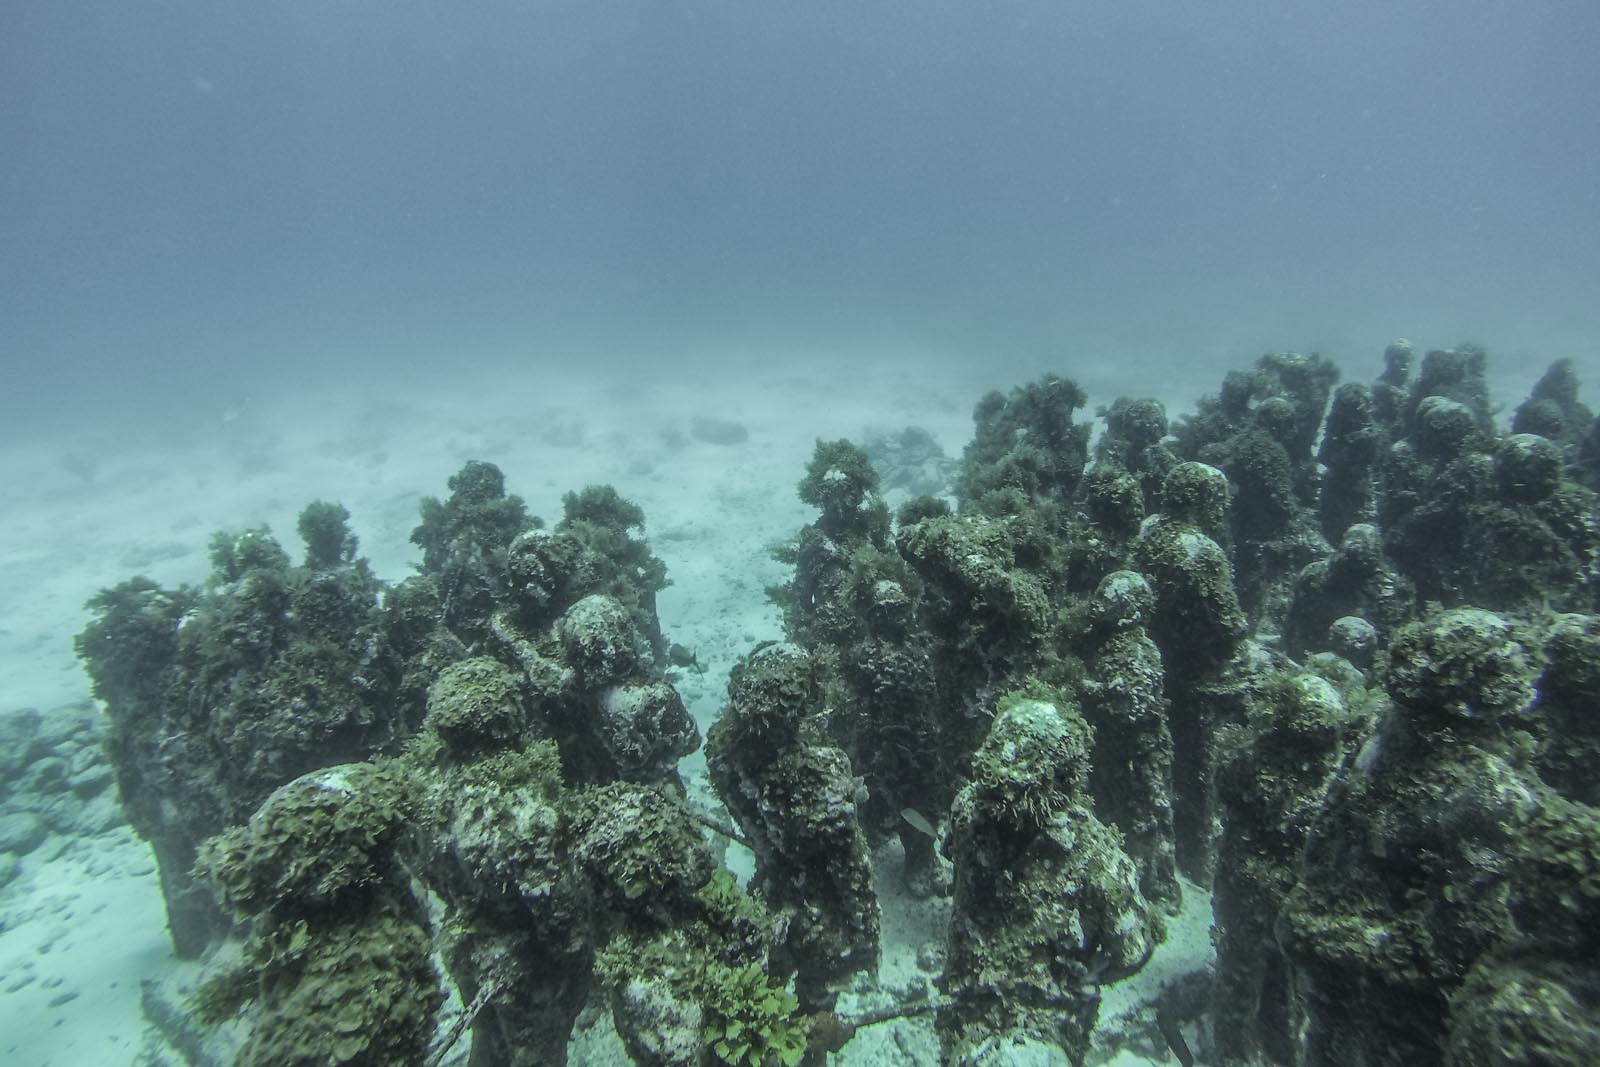 Underwater statues made of special pH neutral cement for the museum.